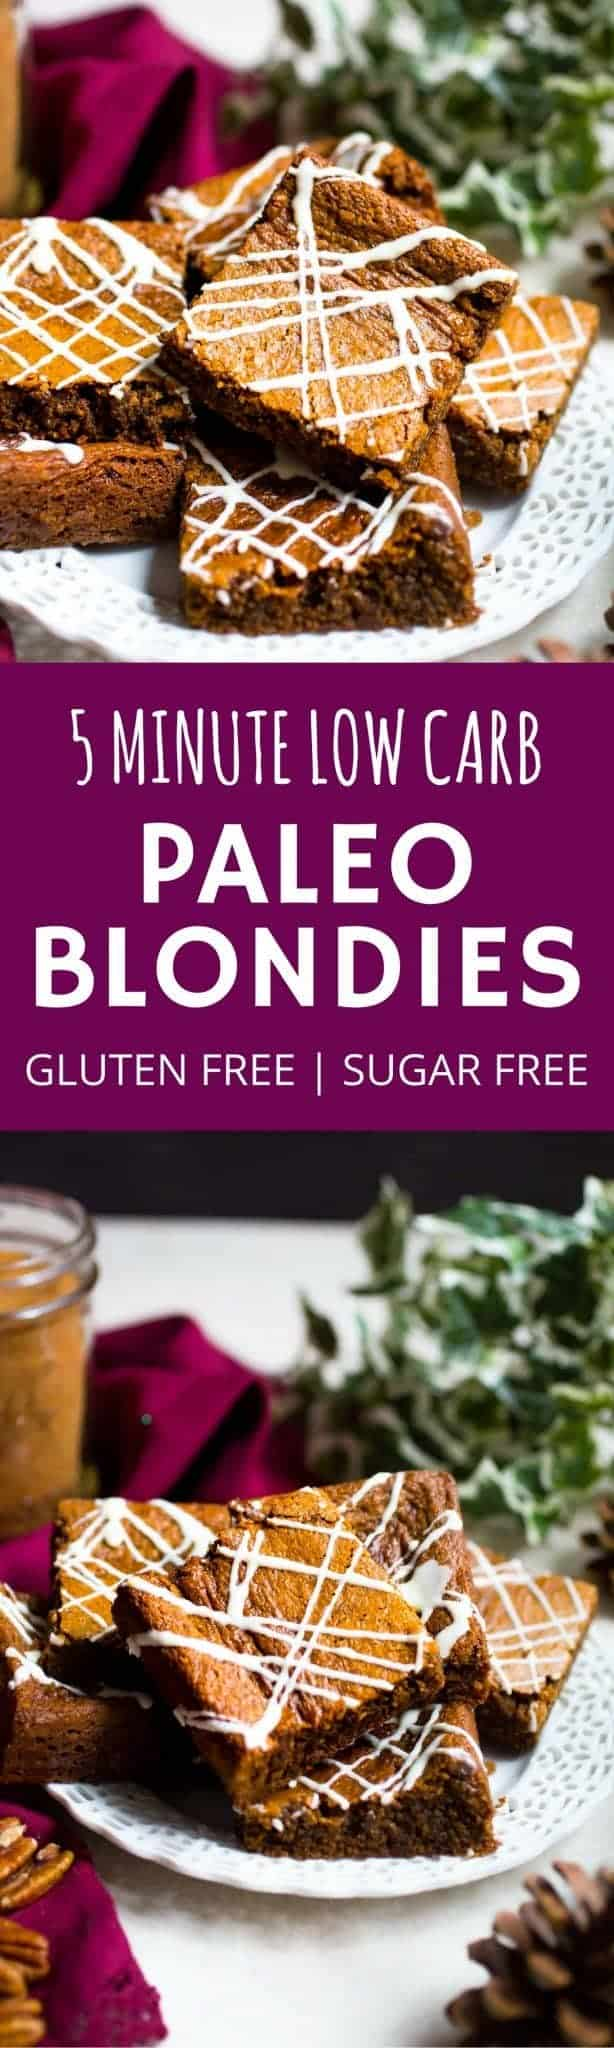 Easy 5 Minute Paleo Pecan Blondie Recipe. Paleo blondies recipes that is healthy and quick to make. Pecan flour blondies. Easy Blondie bars recipe. Low carb, gluten free, dairy free, healthy and sugar free blondies.